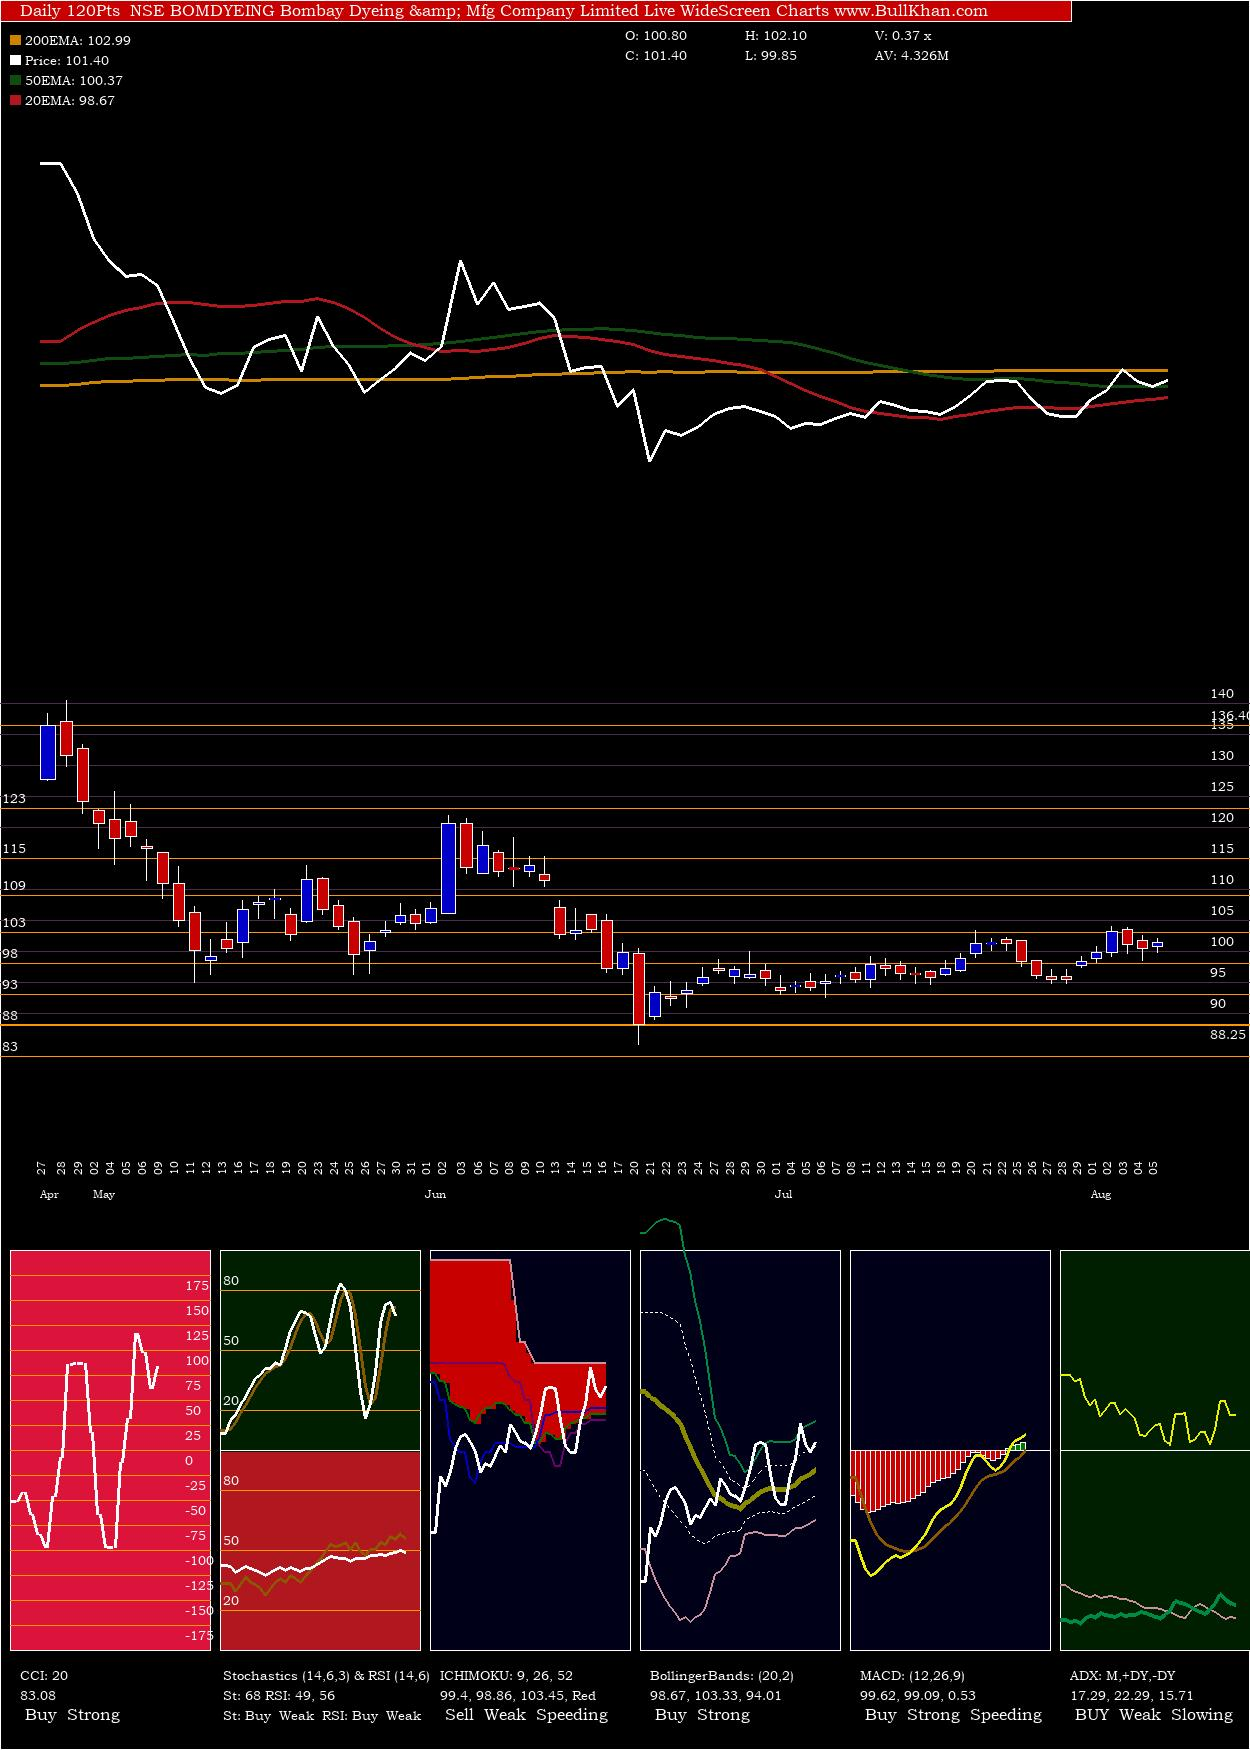 Bombay Dyeing & Mfg Company Limited charts and indicators